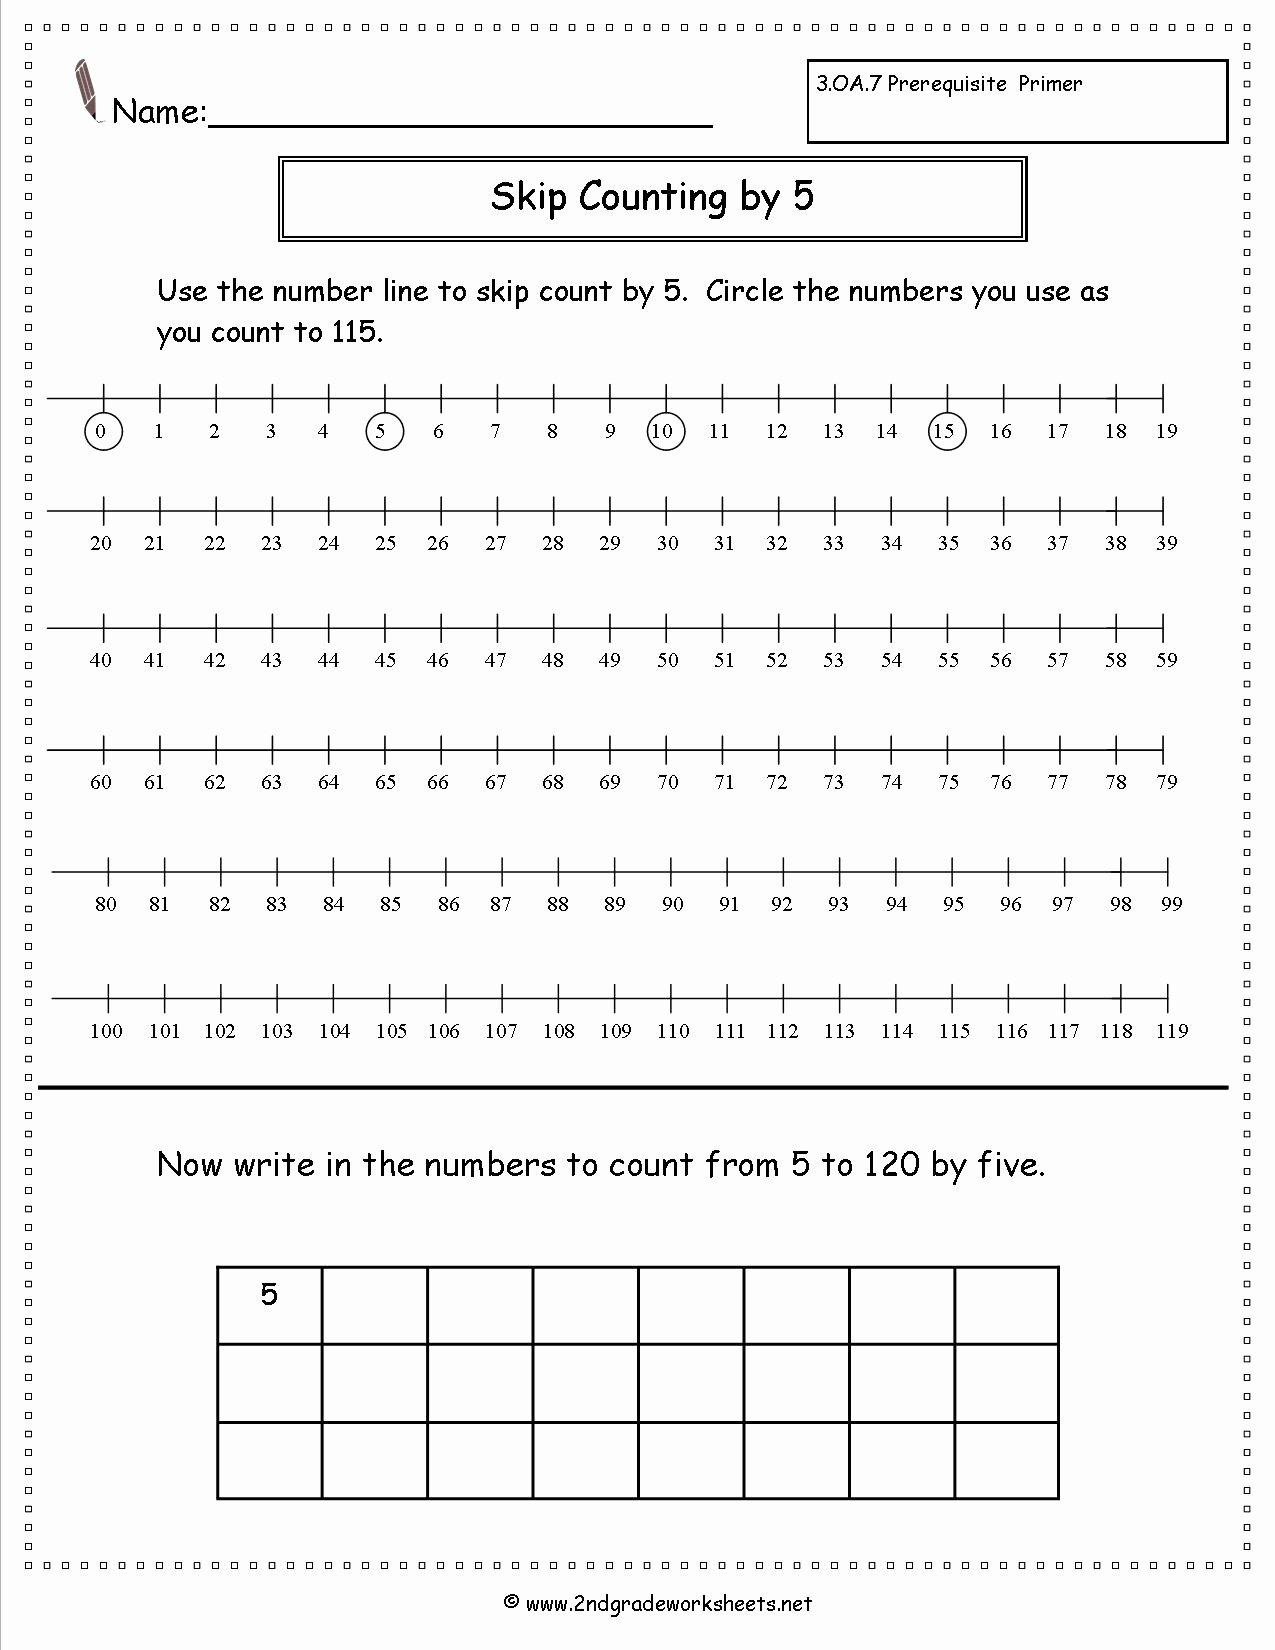 Counting by 10s Worksheet Awesome Fresh Skip Counting by 10s Worksheet